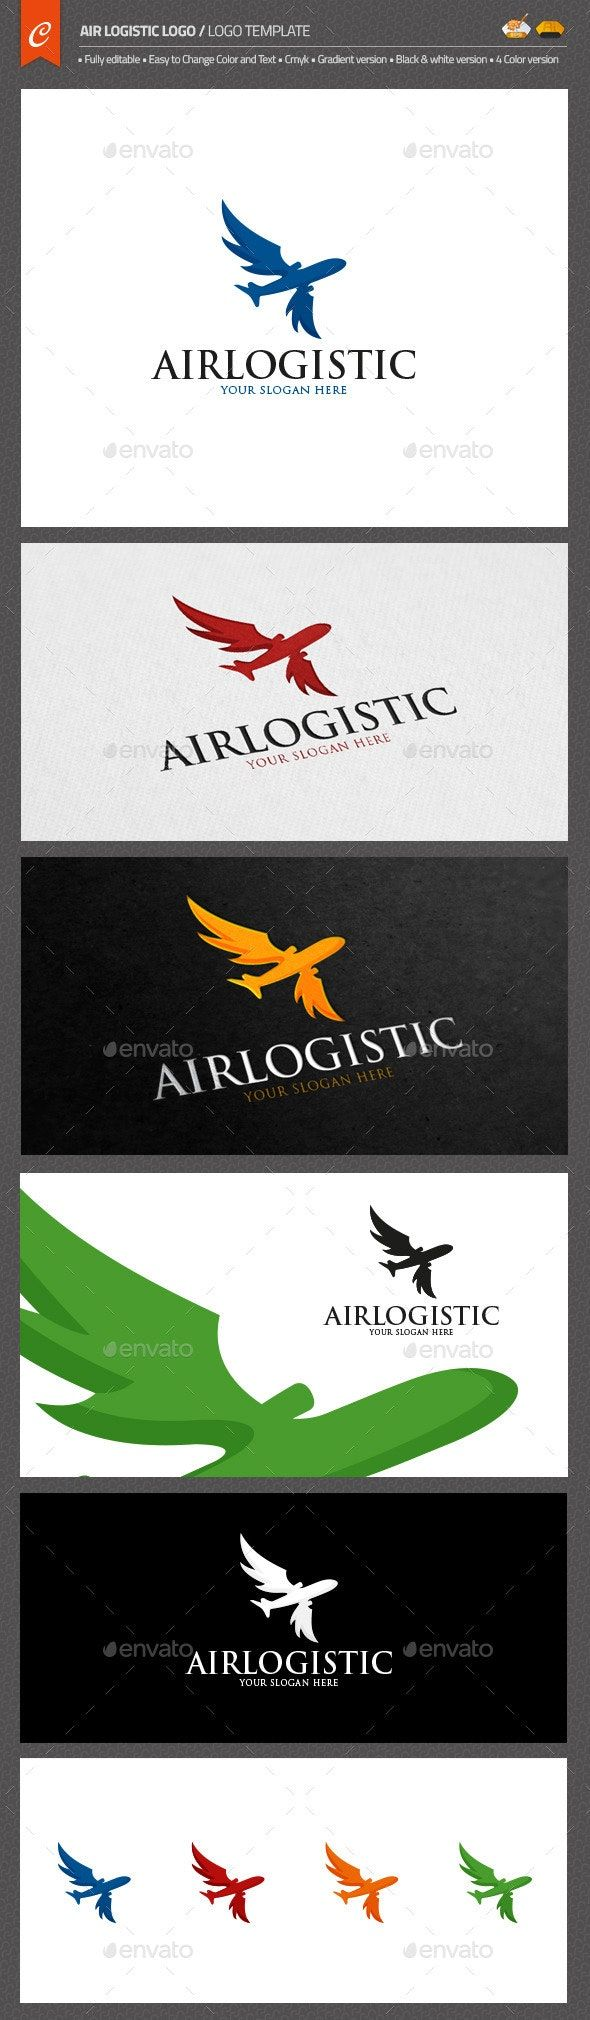 Air Logistic Logo Object Logo Design Template created by